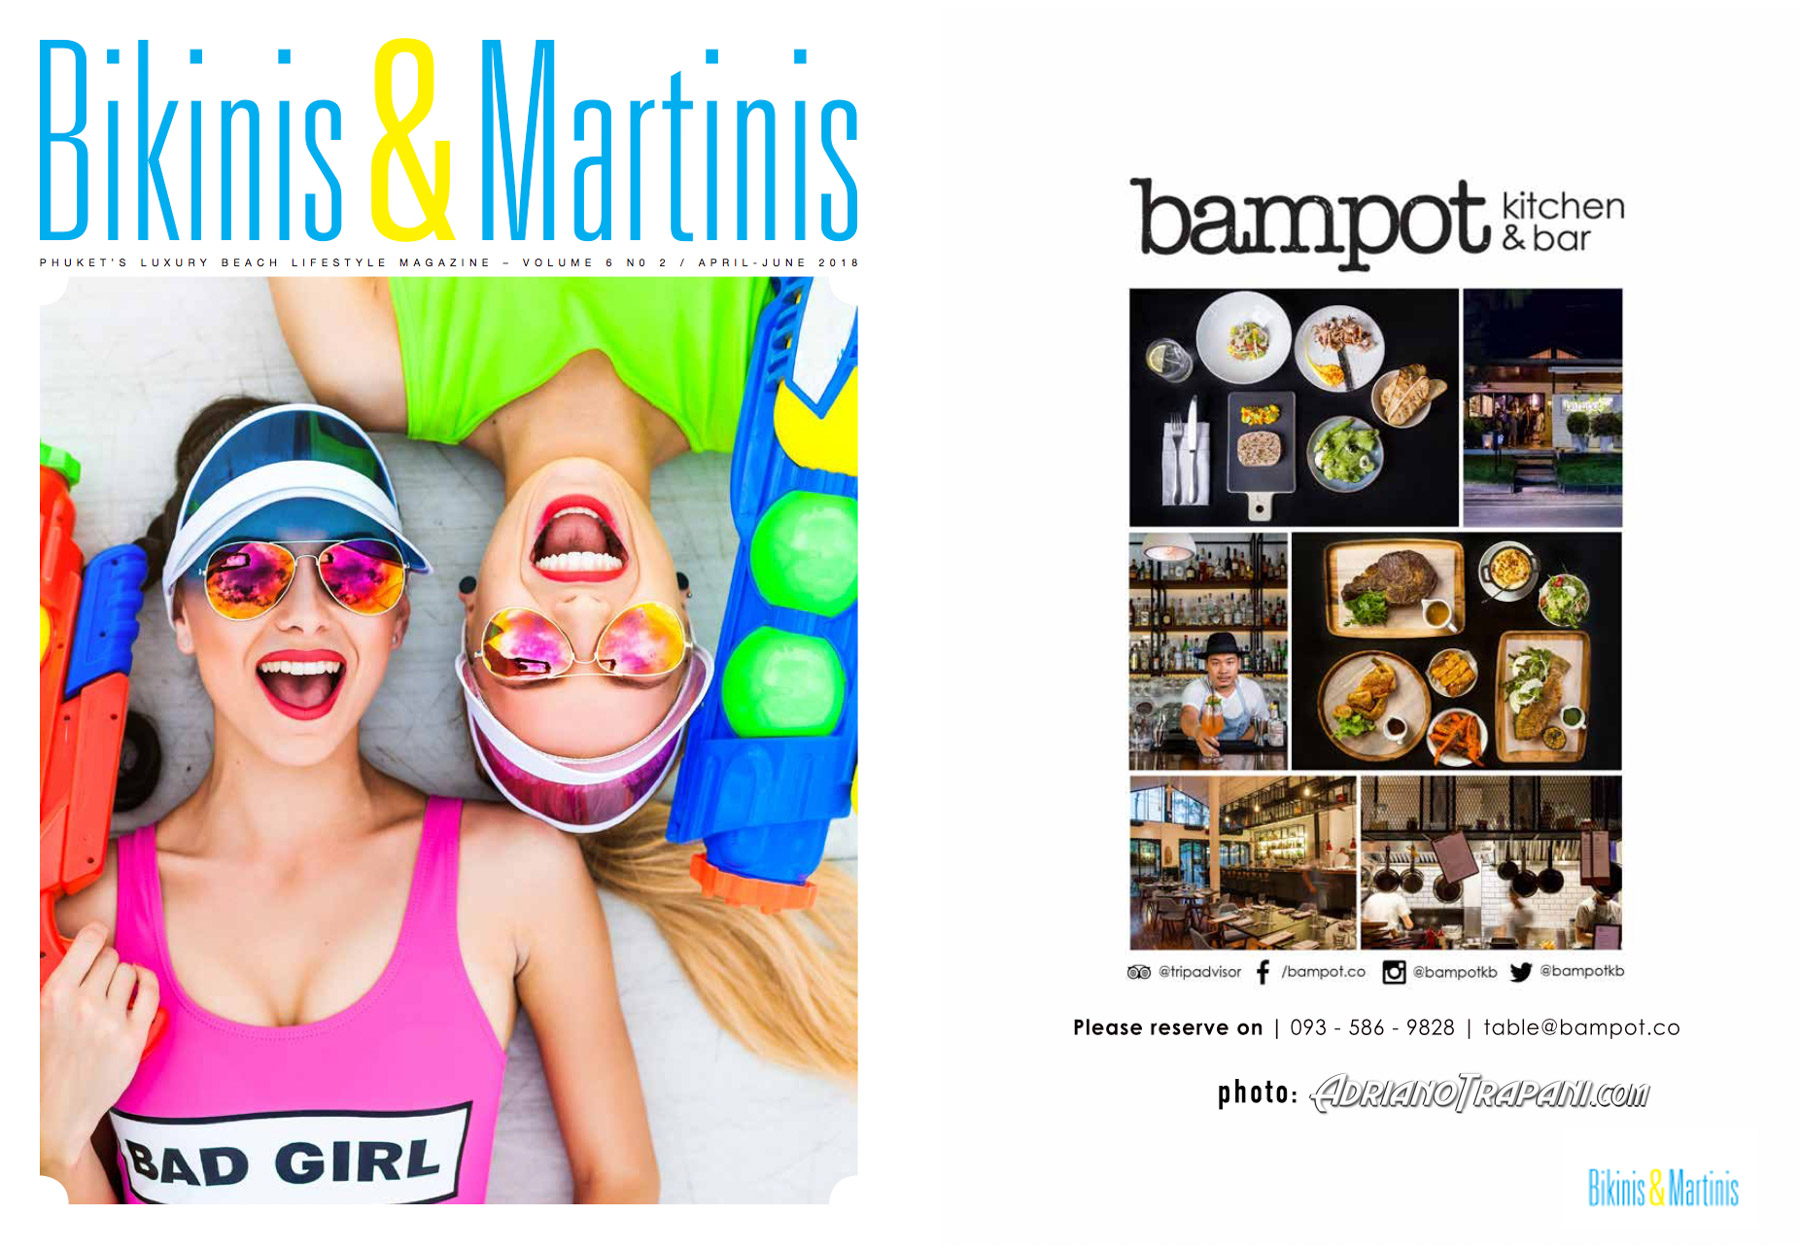 Bikinis & Martinis magazine - BAMPOT Kitchen & Bar Phuket